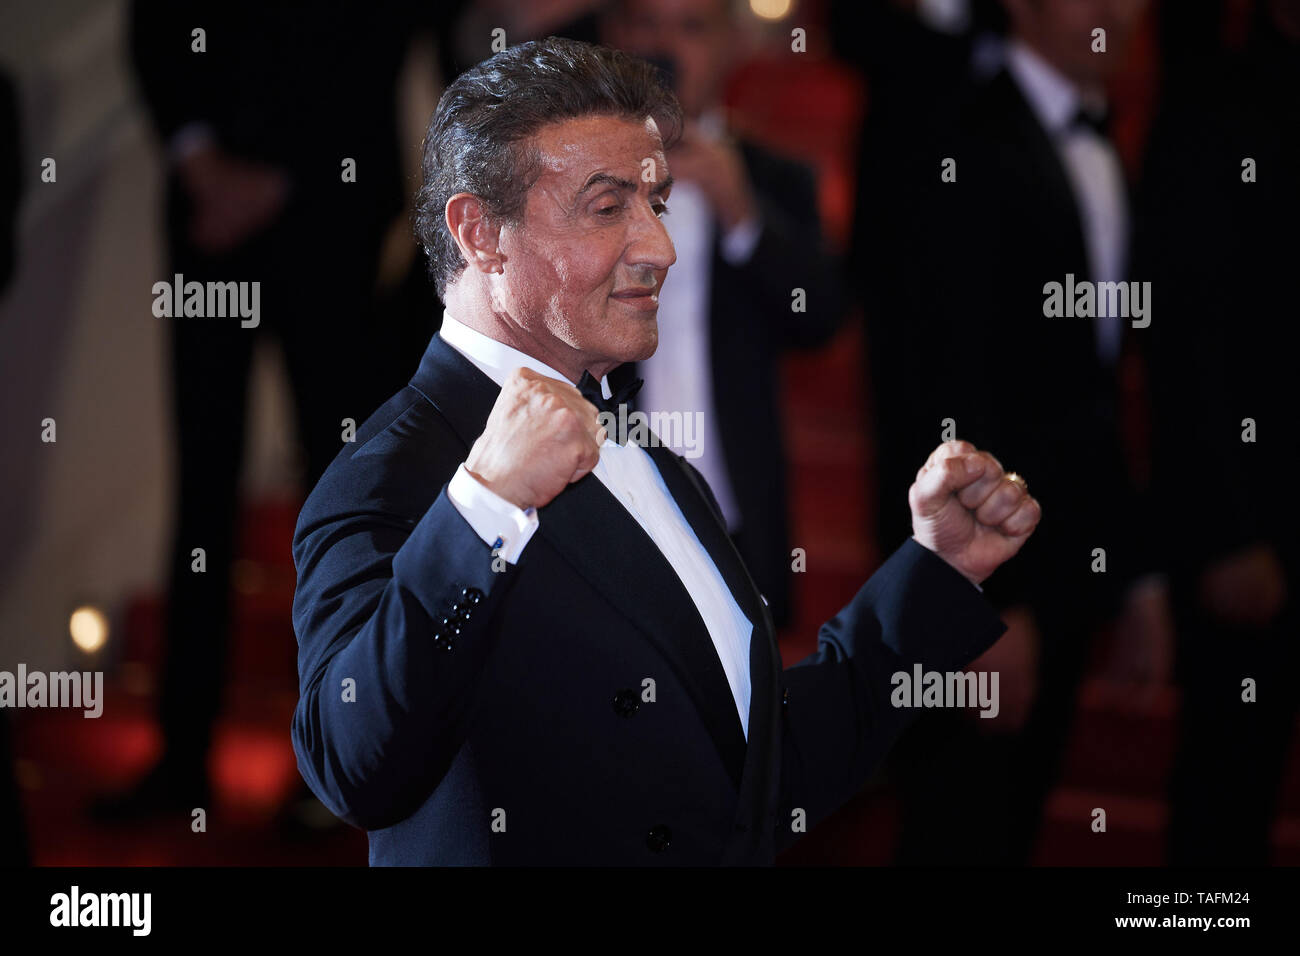 Cannes, France. 24th May, 2019. CANNES, FRANCE - MAY 23: Actor Sylvester Stallone attends the screening of 'Rambo - First Blood' during the 72nd annual Cannes Film Festival on May 24, 2019 in Cannes, France. (Photo by Oleg Nikishin/TASS) Credit: ITAR-TASS News Agency/Alamy Live News - Stock Image